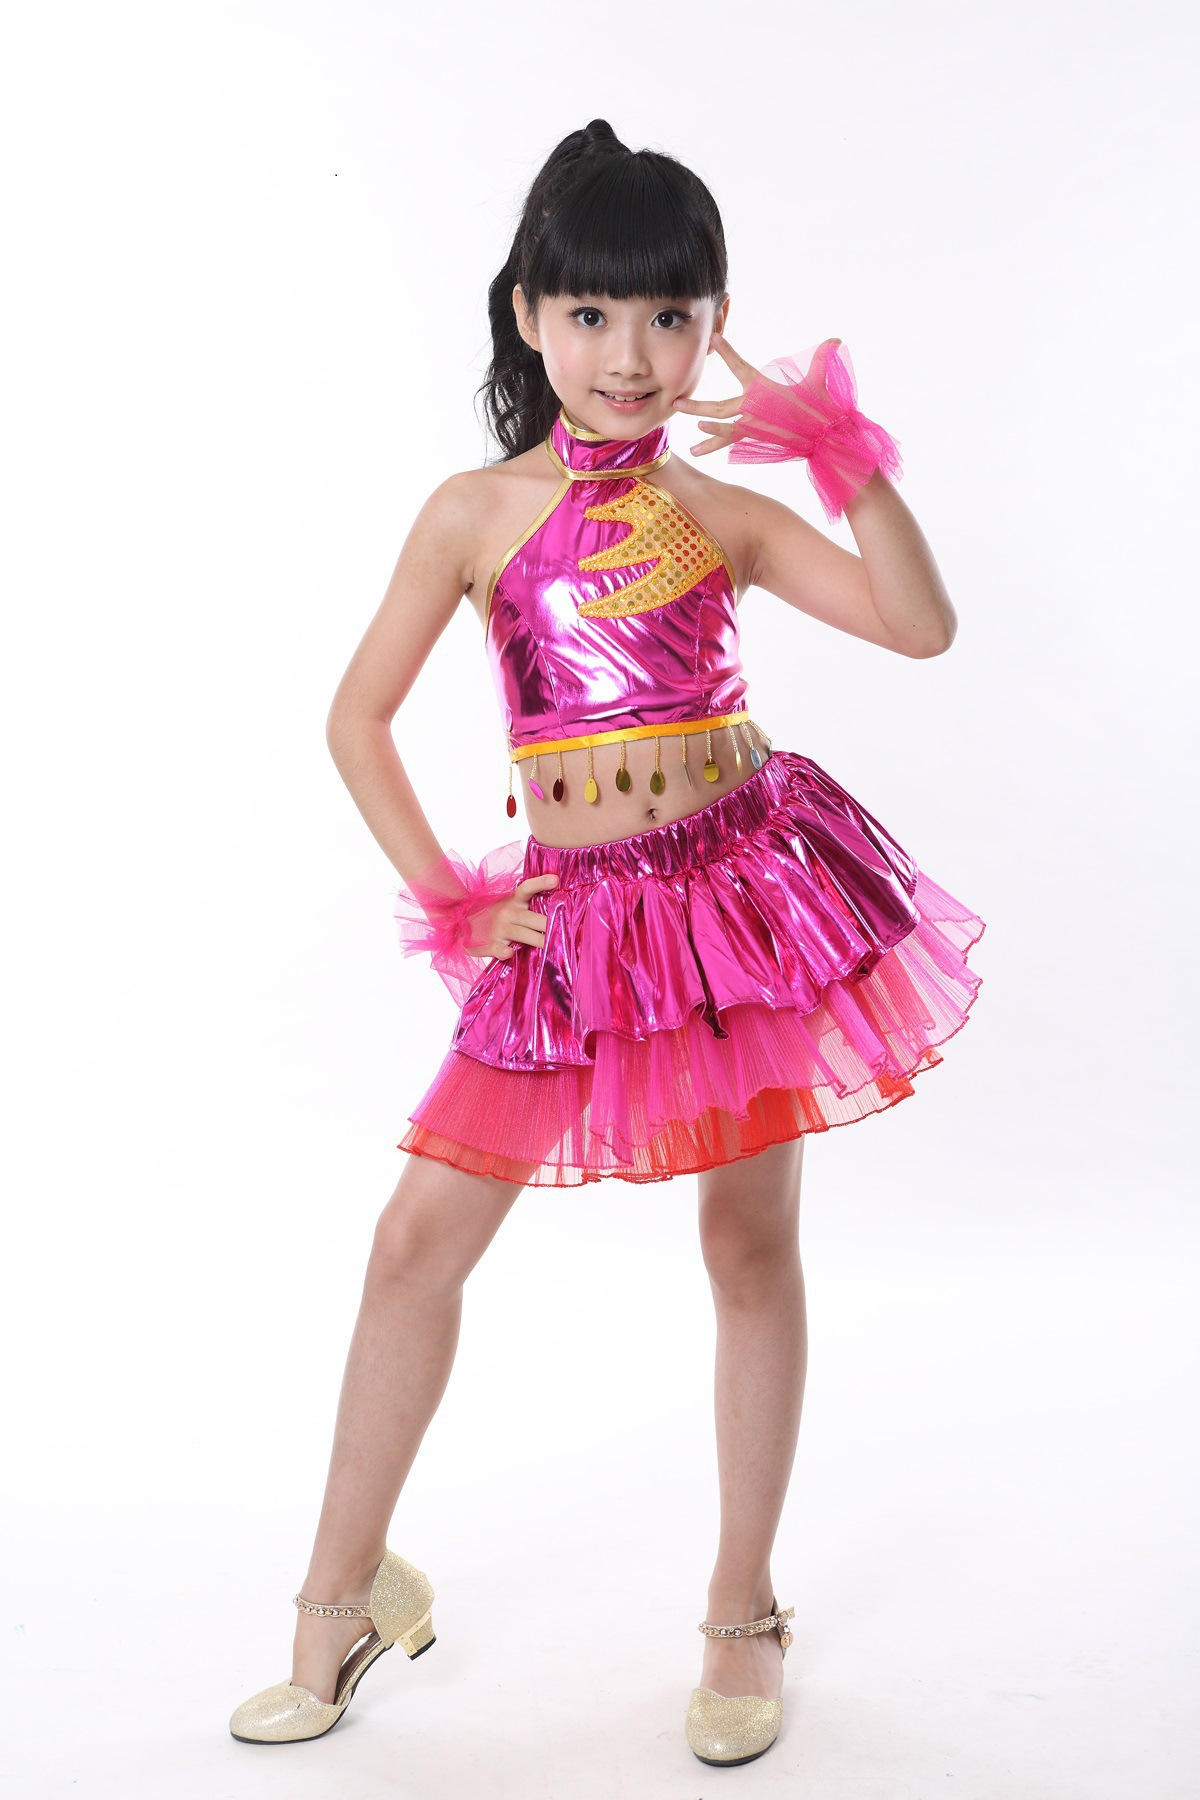 New Children 39 s Day Children 39 s Dance Wear Girls Latin Dance Performance Costumes Personalized Costumes Sequin Street Dance Wear in Ballet from Novelty amp Special Use